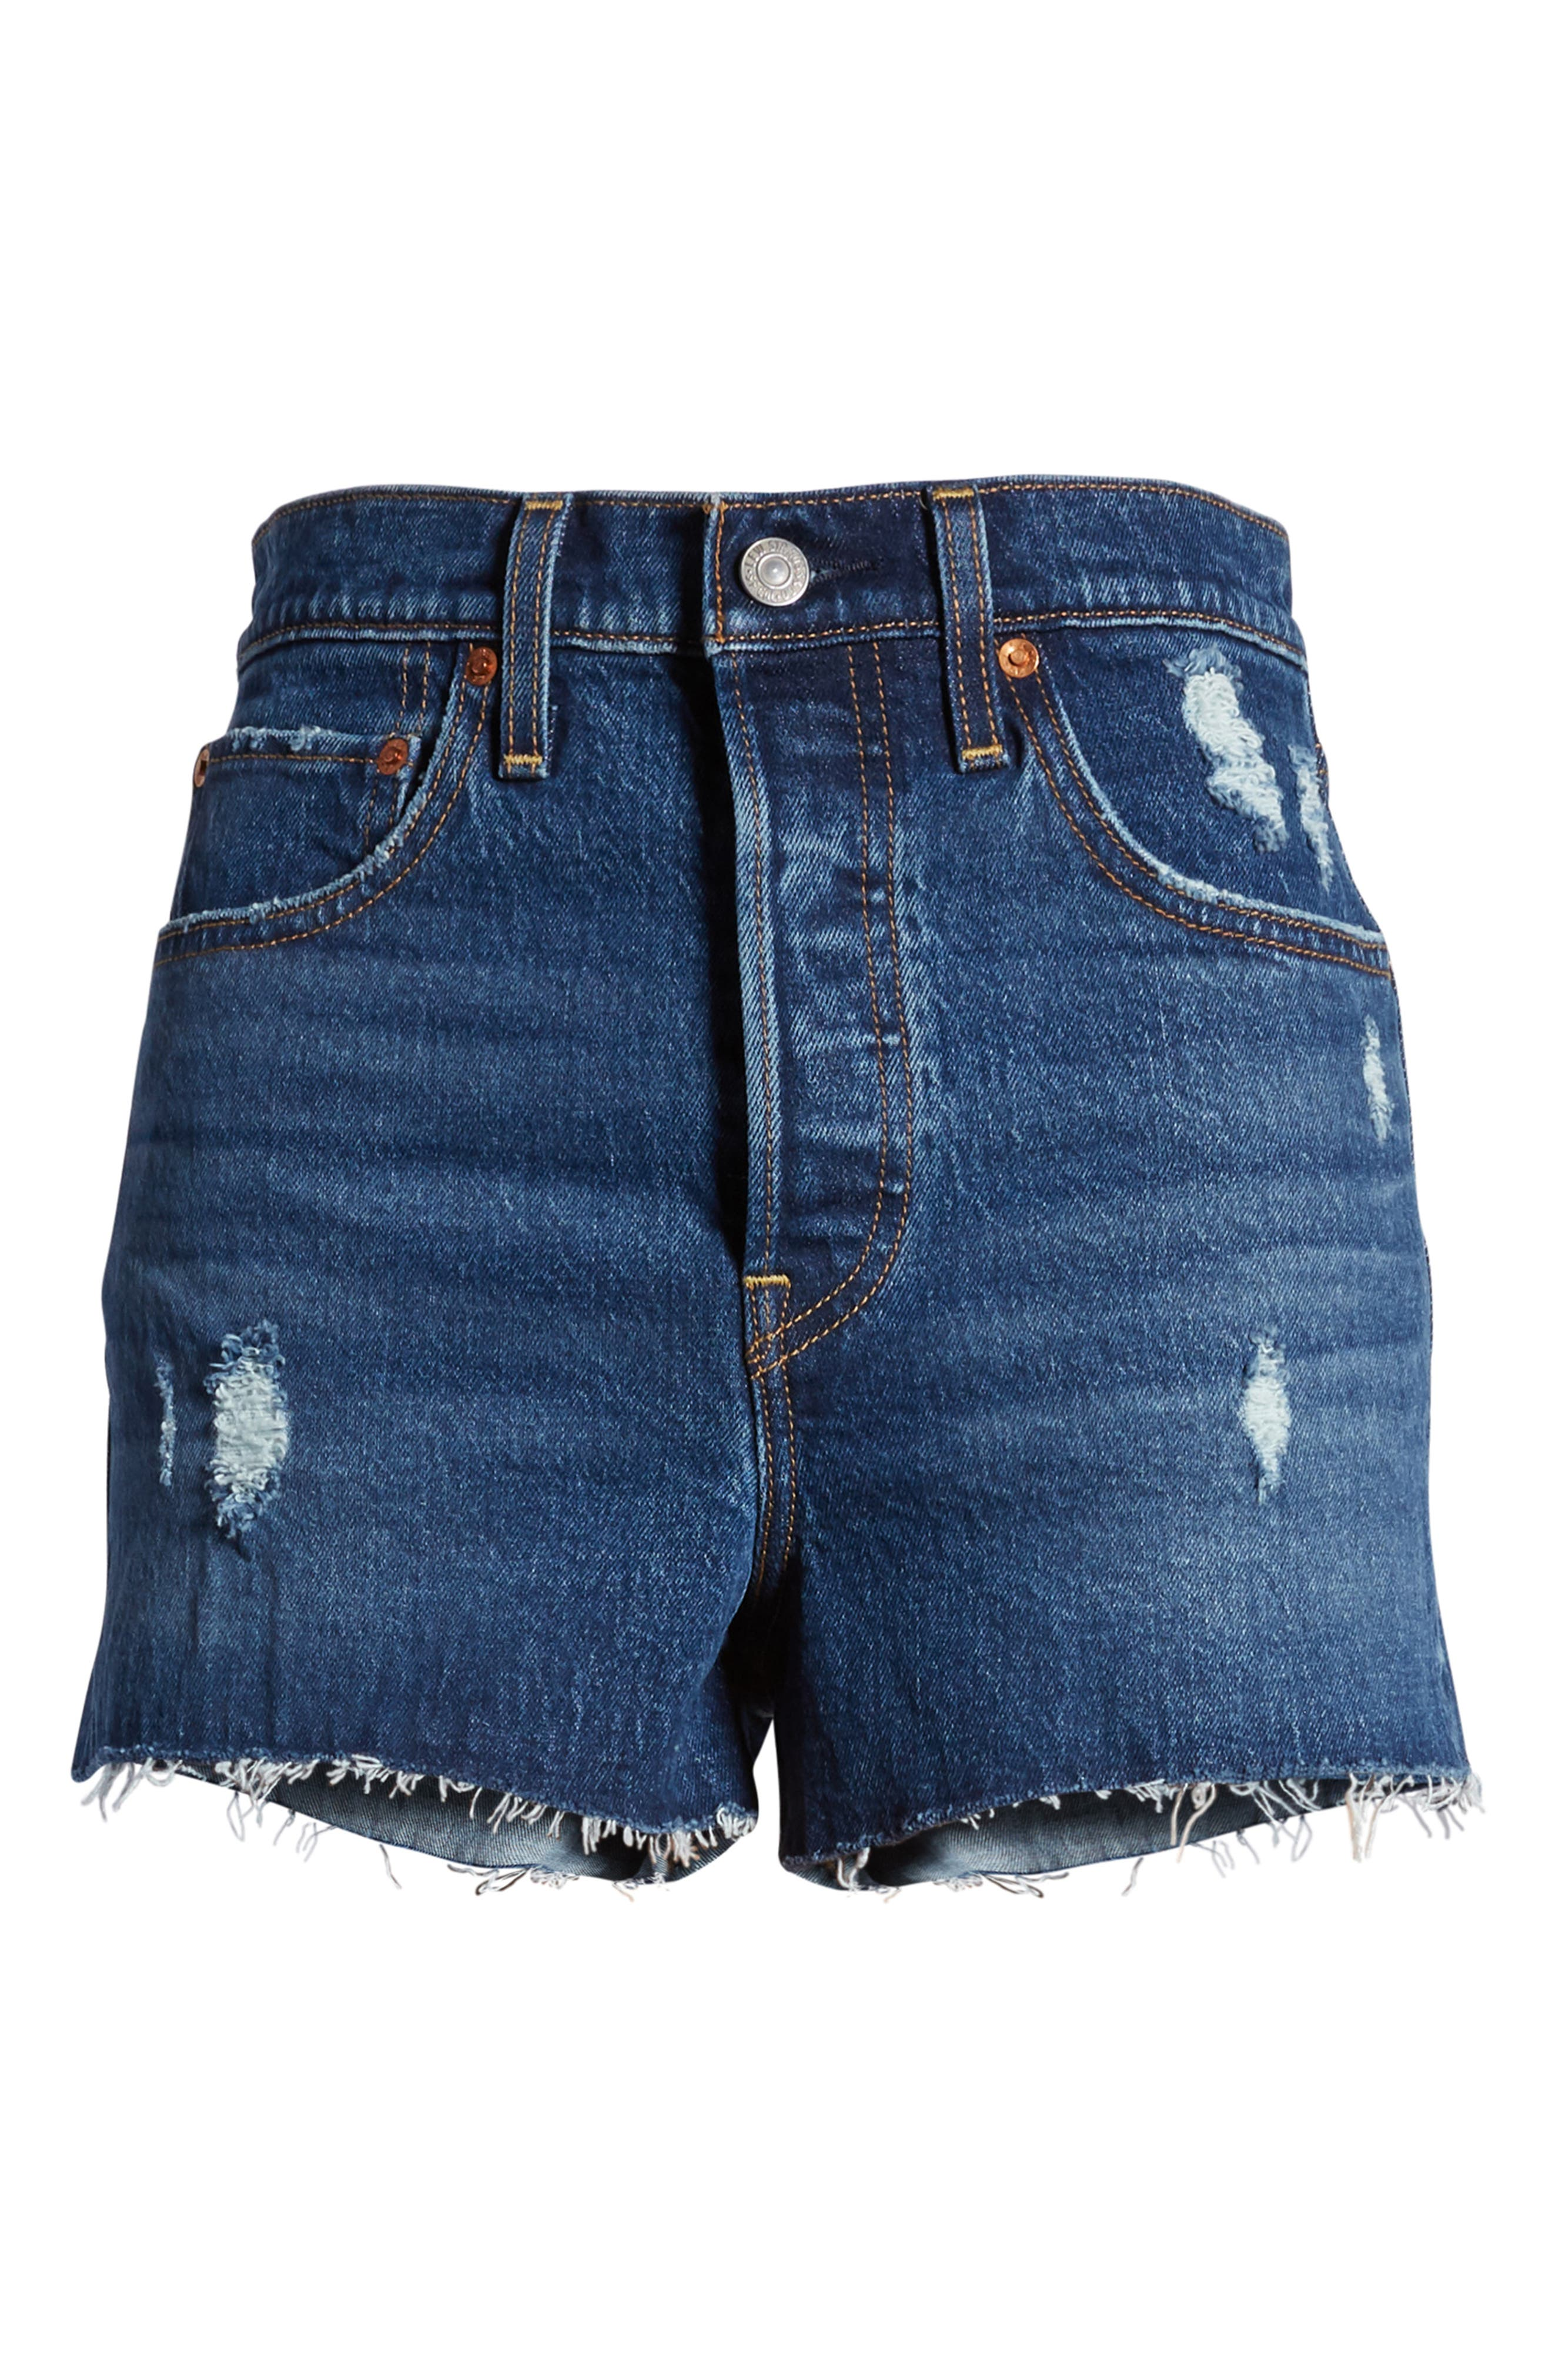 Women's Levi's Ribcage High Waist Denim Shorts